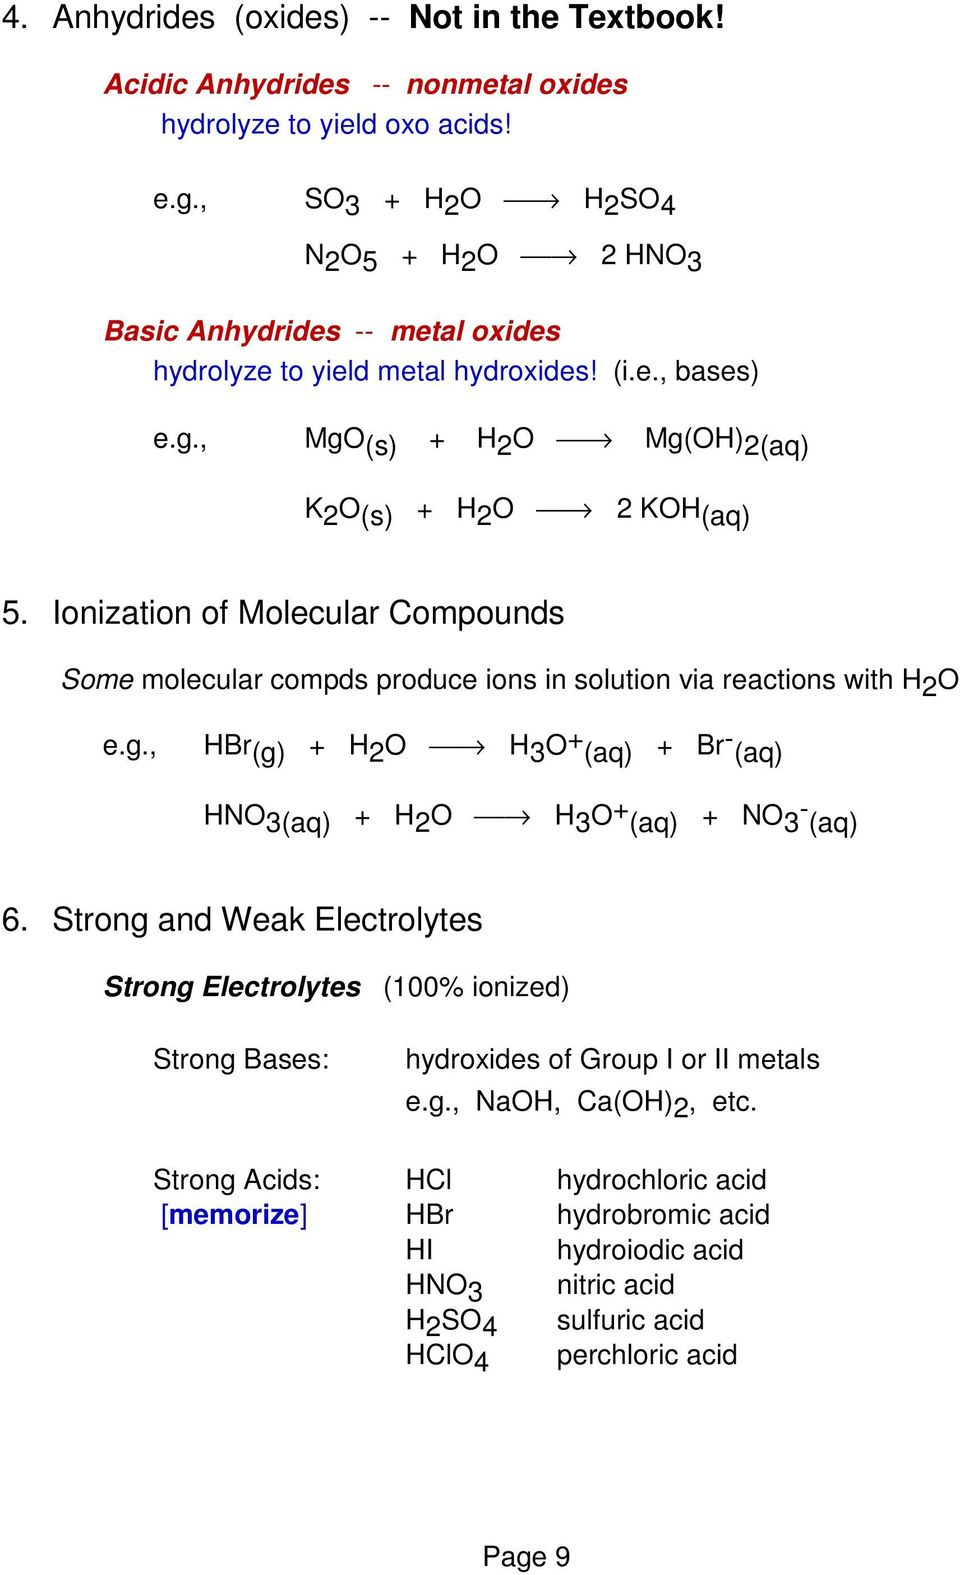 Ionization of Molecular Compounds Some molecular compds produce ions in solution via reactions with H 2 O e.g., HBr (g) + H 2 O H 3 O + (aq) + Br- (aq) HNO 3(aq) + H 2 O H 3 O + (aq) + NO 3 - (aq) 6.